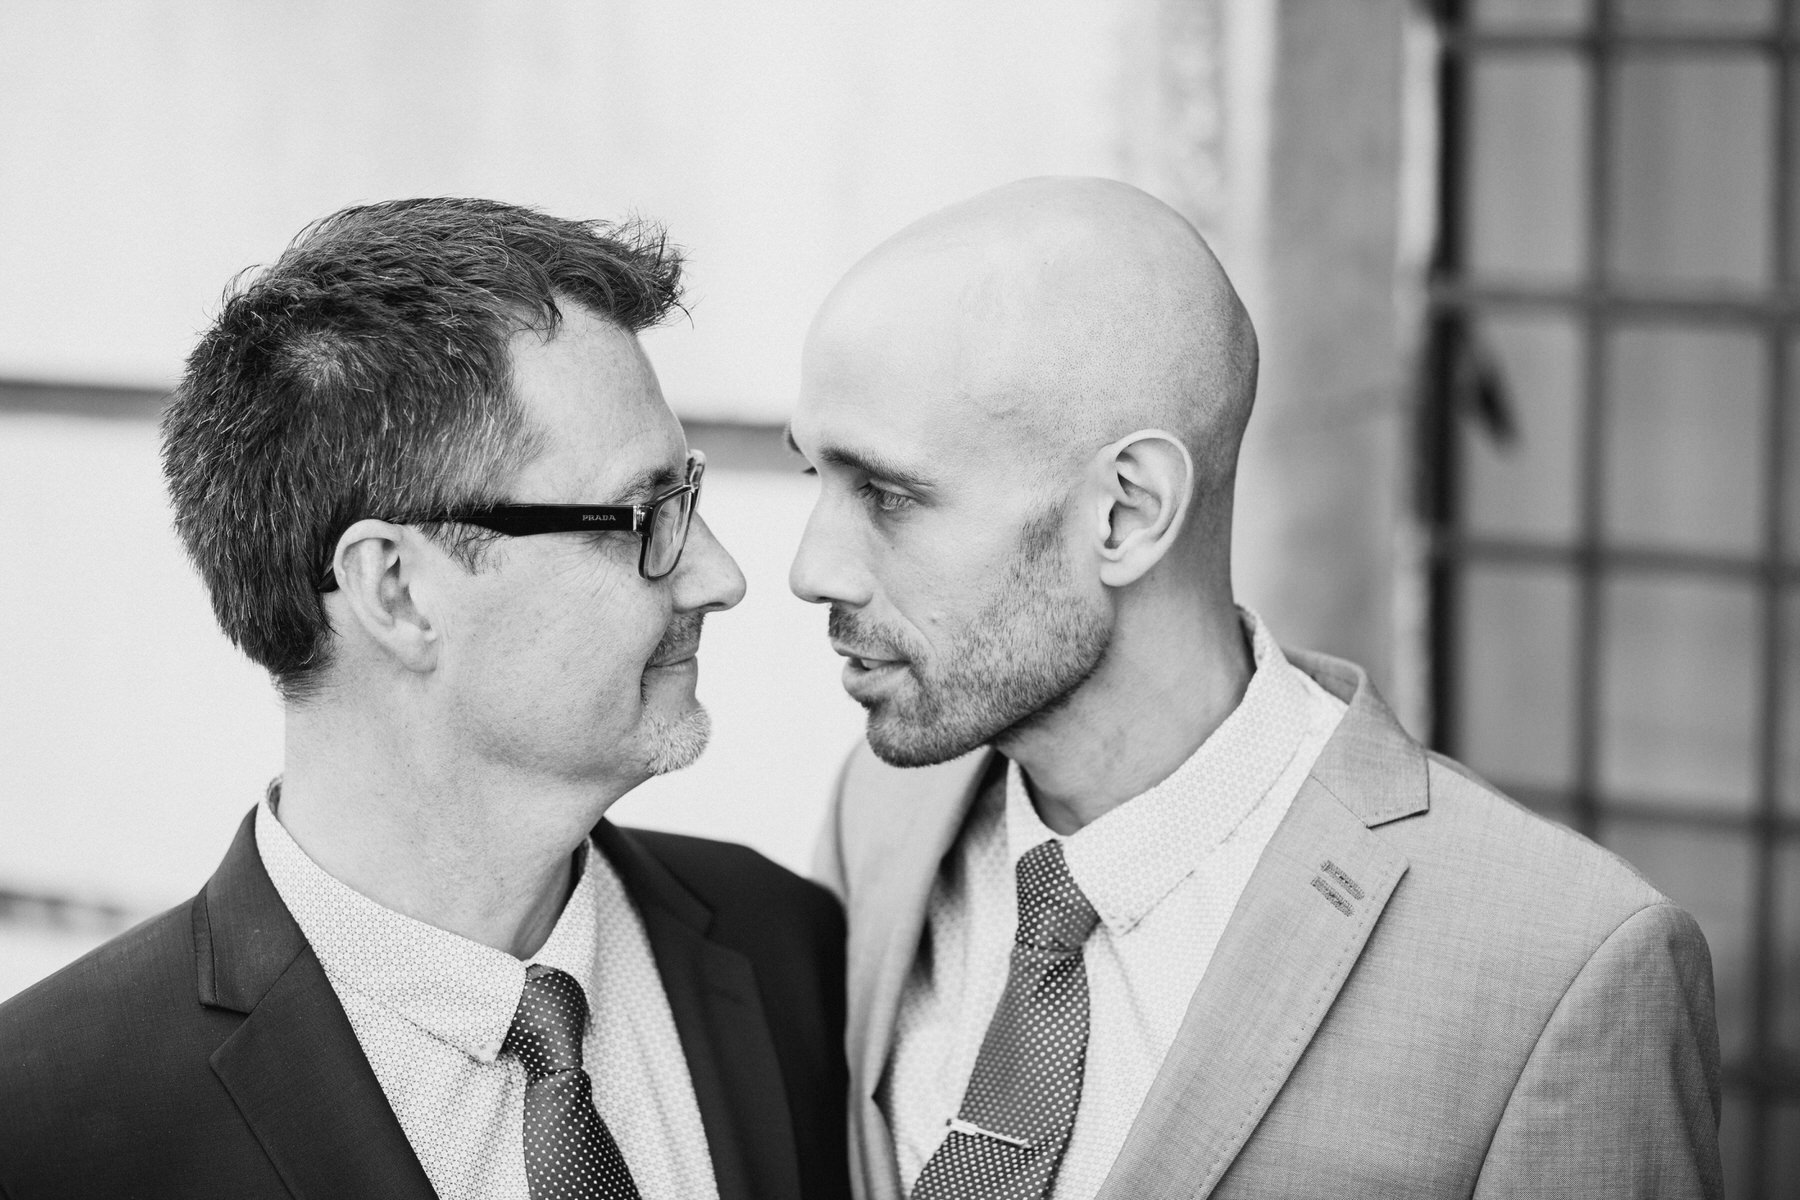 113 London gay couple wedding portraits BW .jpg